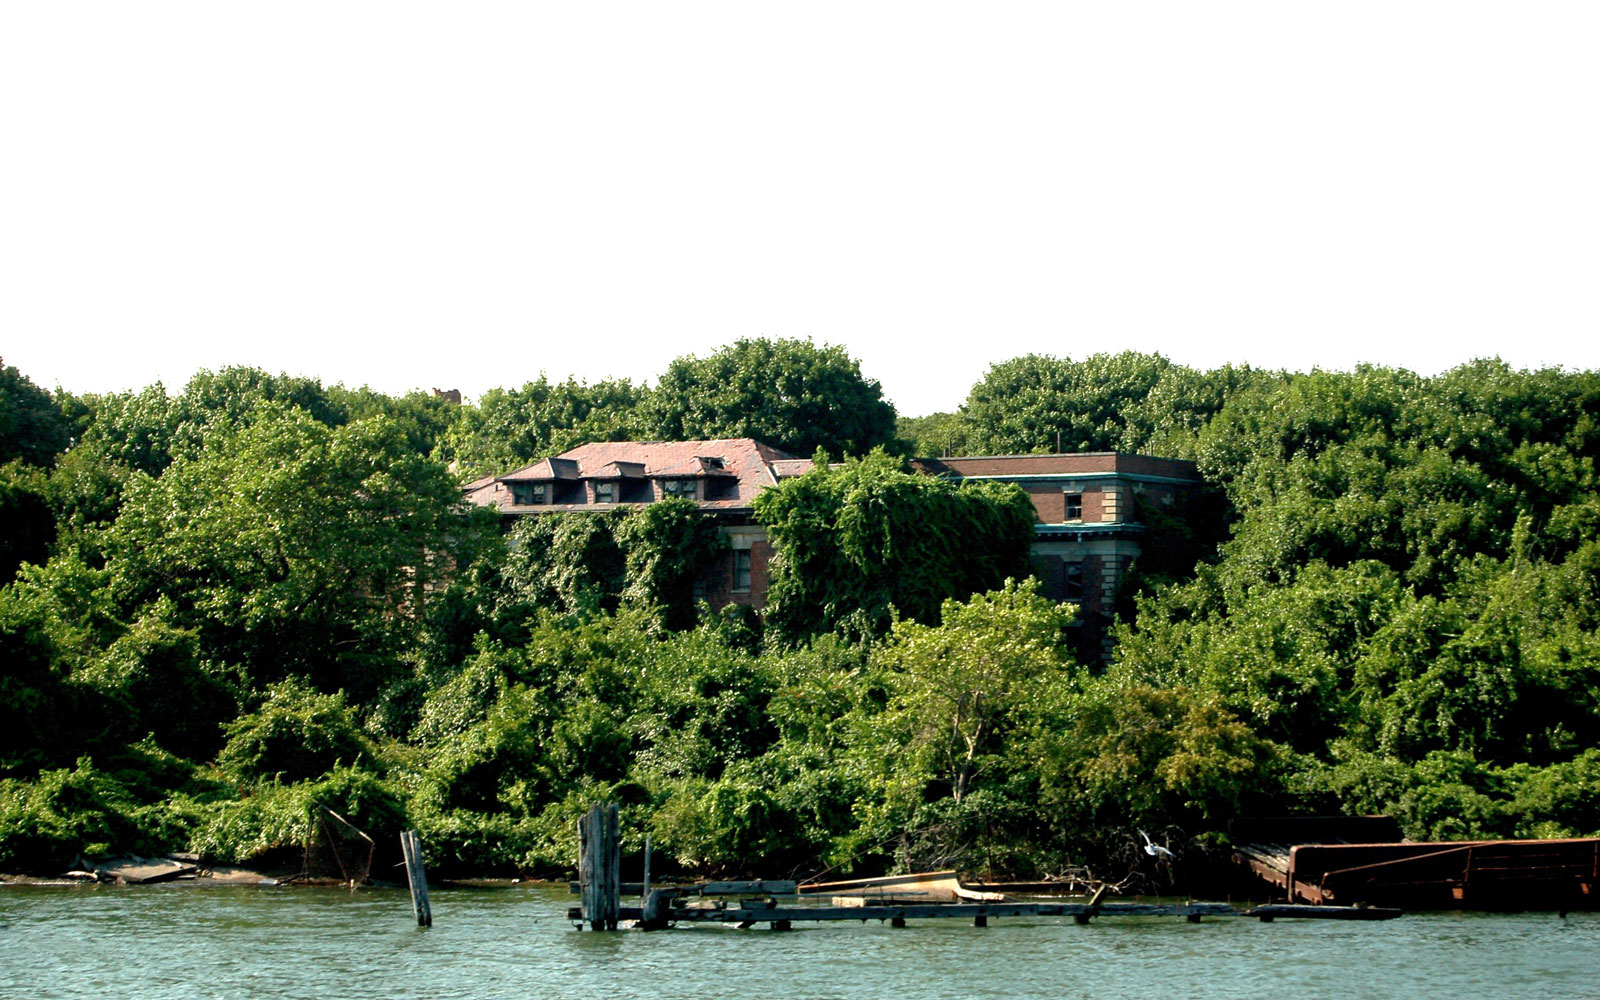 America's Coolest Ghost Towns: North Brother Island, NY